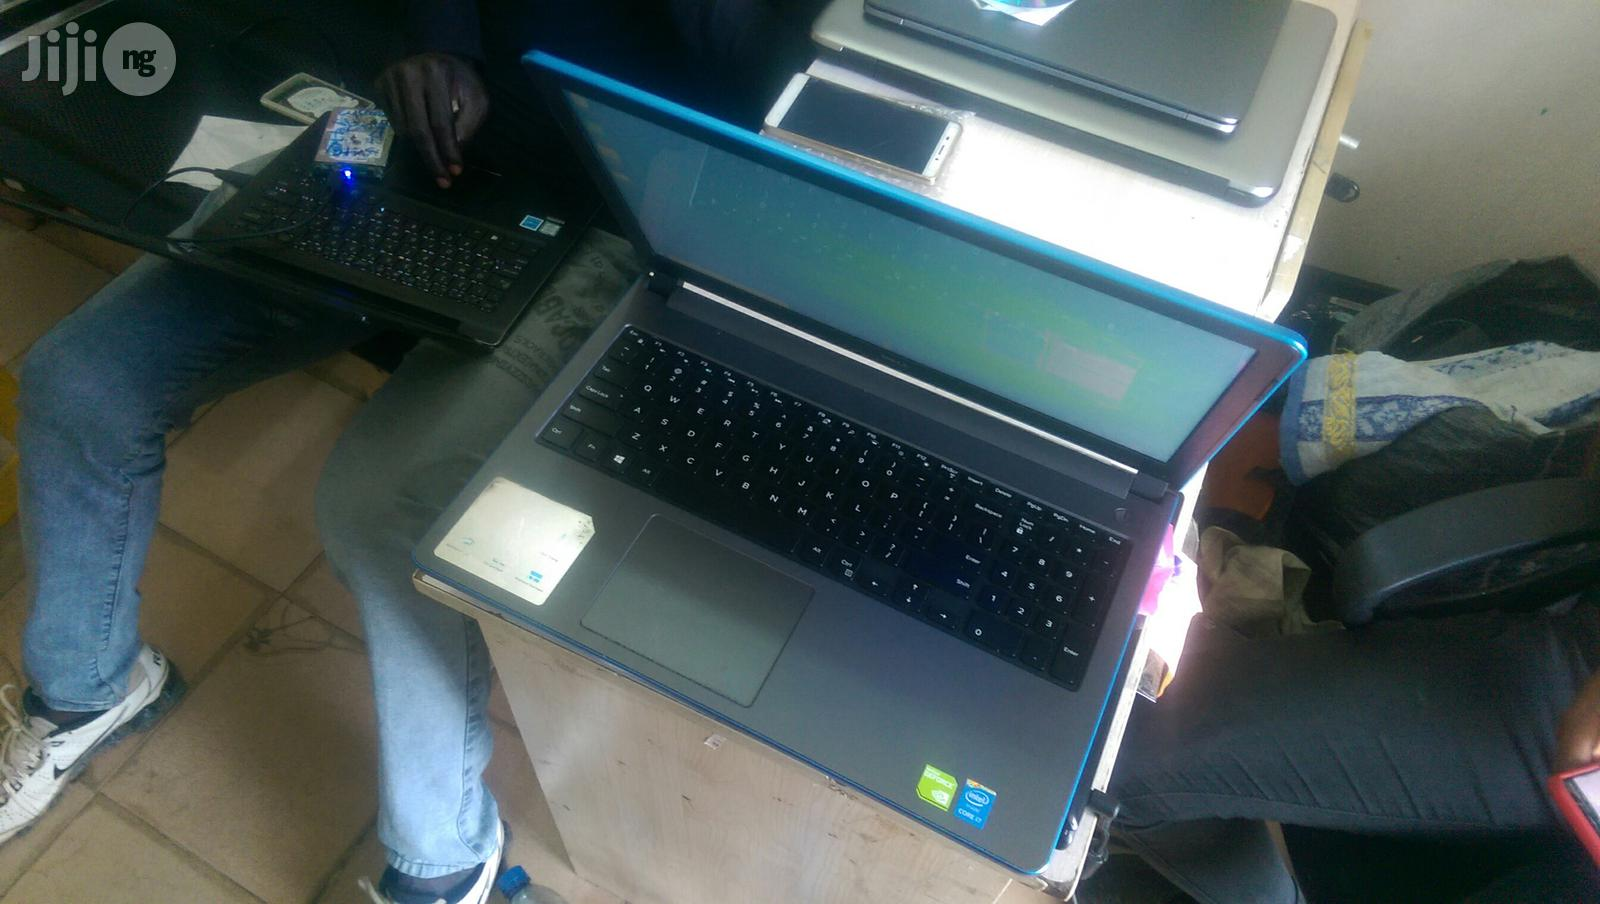 Laptop Dell Inspiron 15 5558 8GB Intel Core i7 HDD 1T | Laptops & Computers for sale in Ikeja, Lagos State, Nigeria